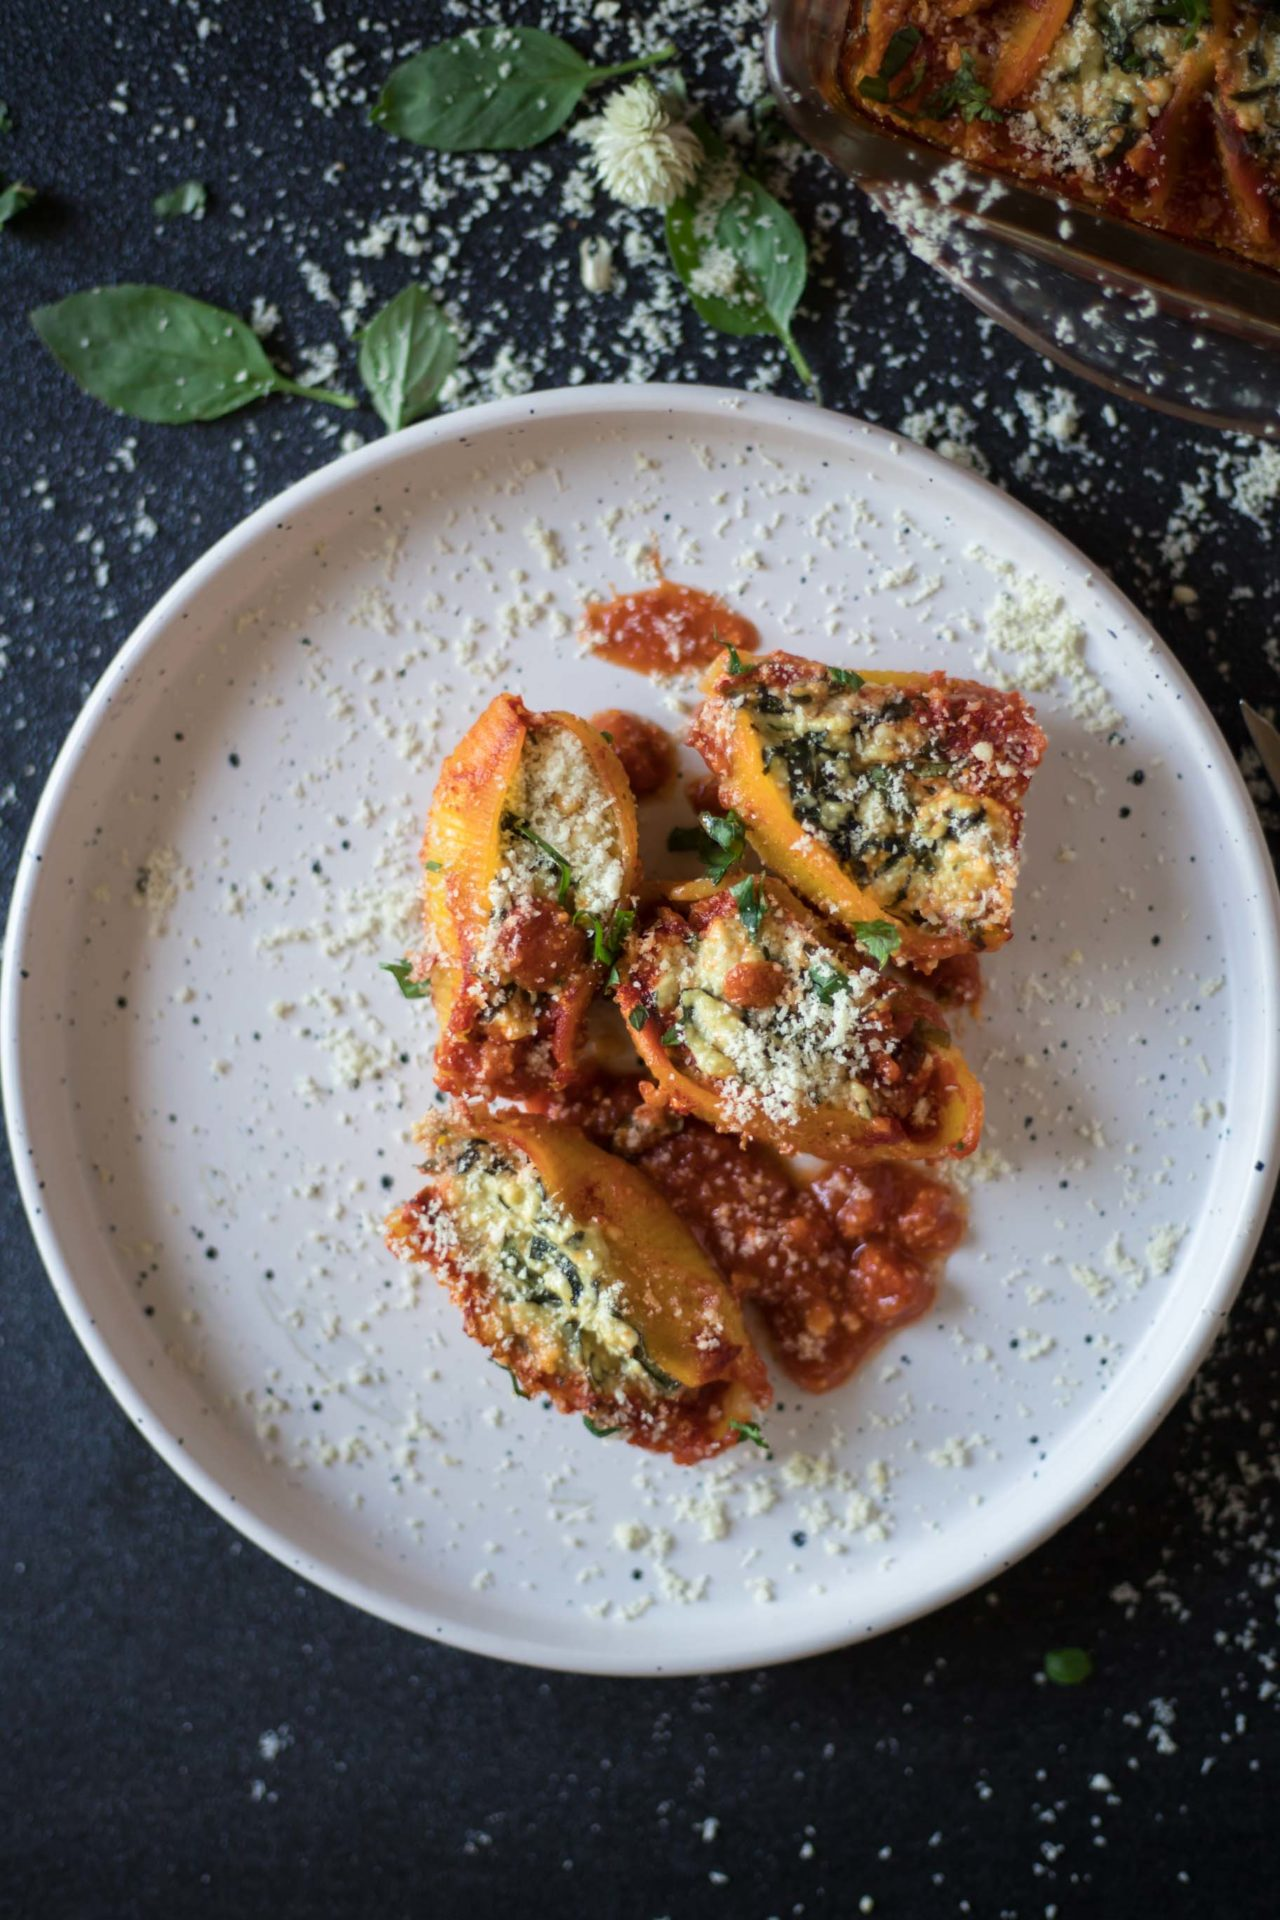 These Low FODMAP Ricotta and Spinach Pasta Shells are light yet filling, super flavorful, healthy and easy to digest. Plus super simple to make!